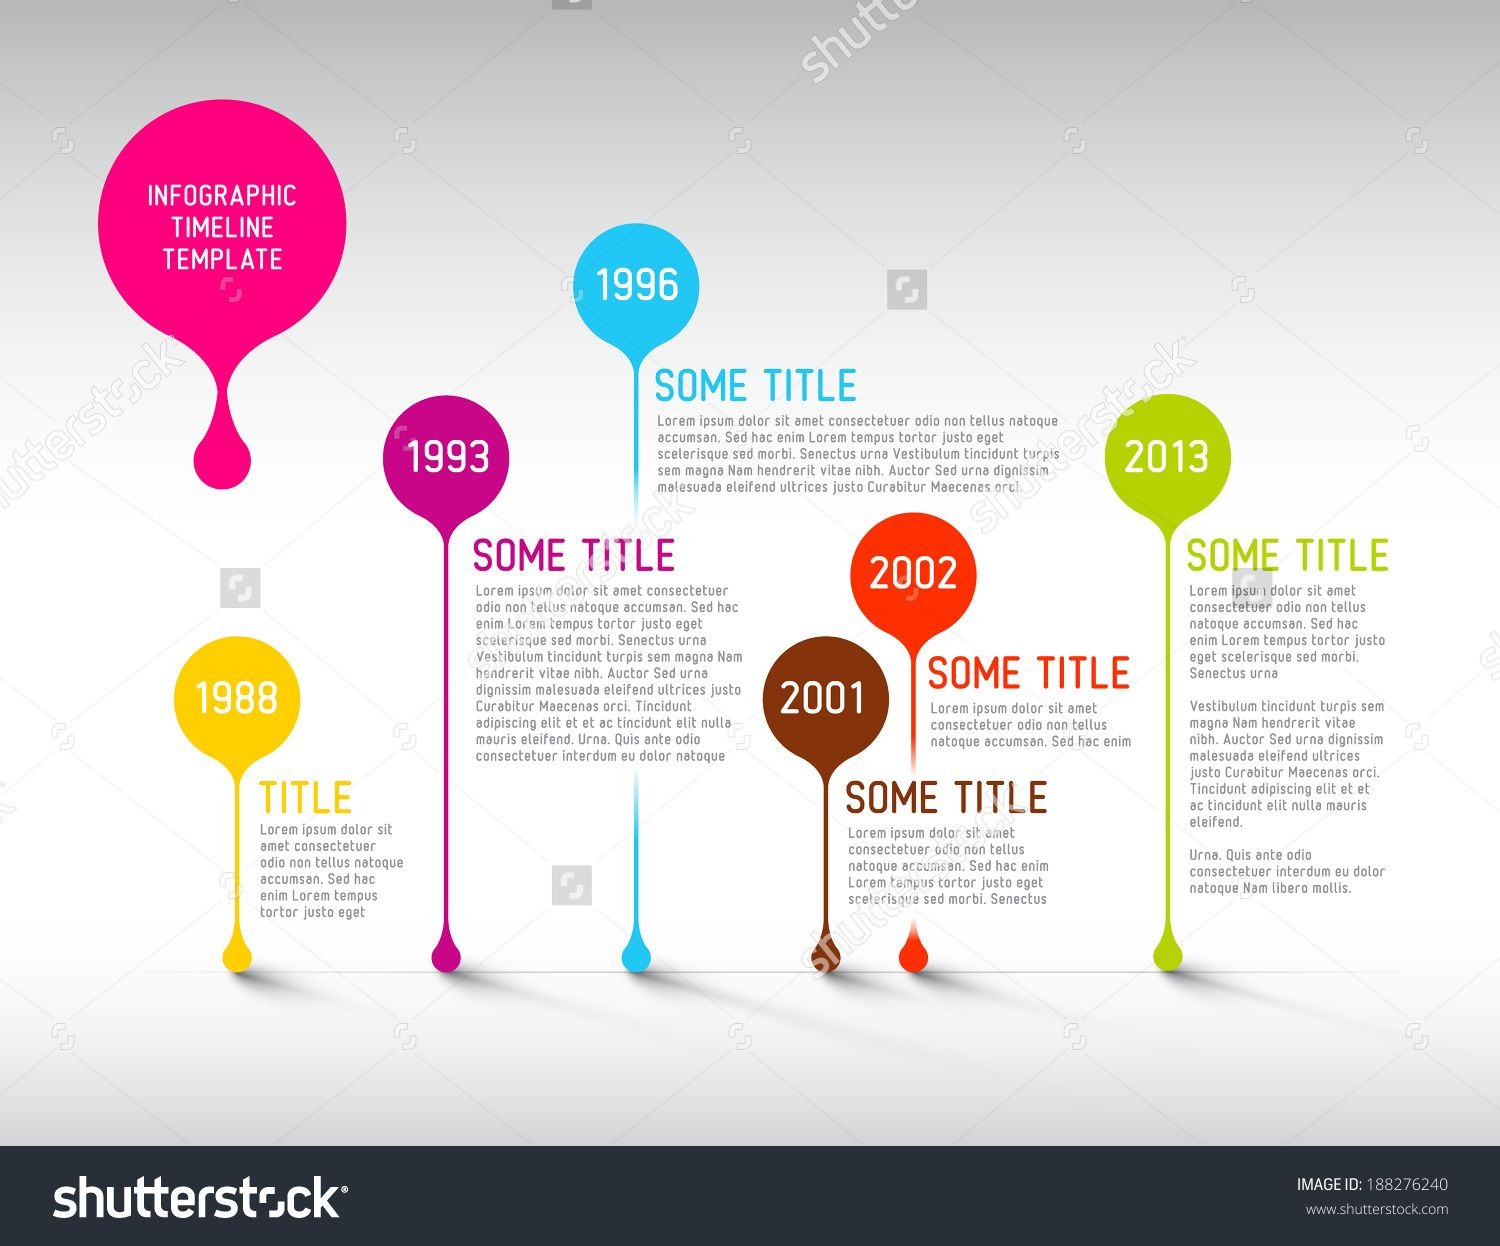 infographic timeline template